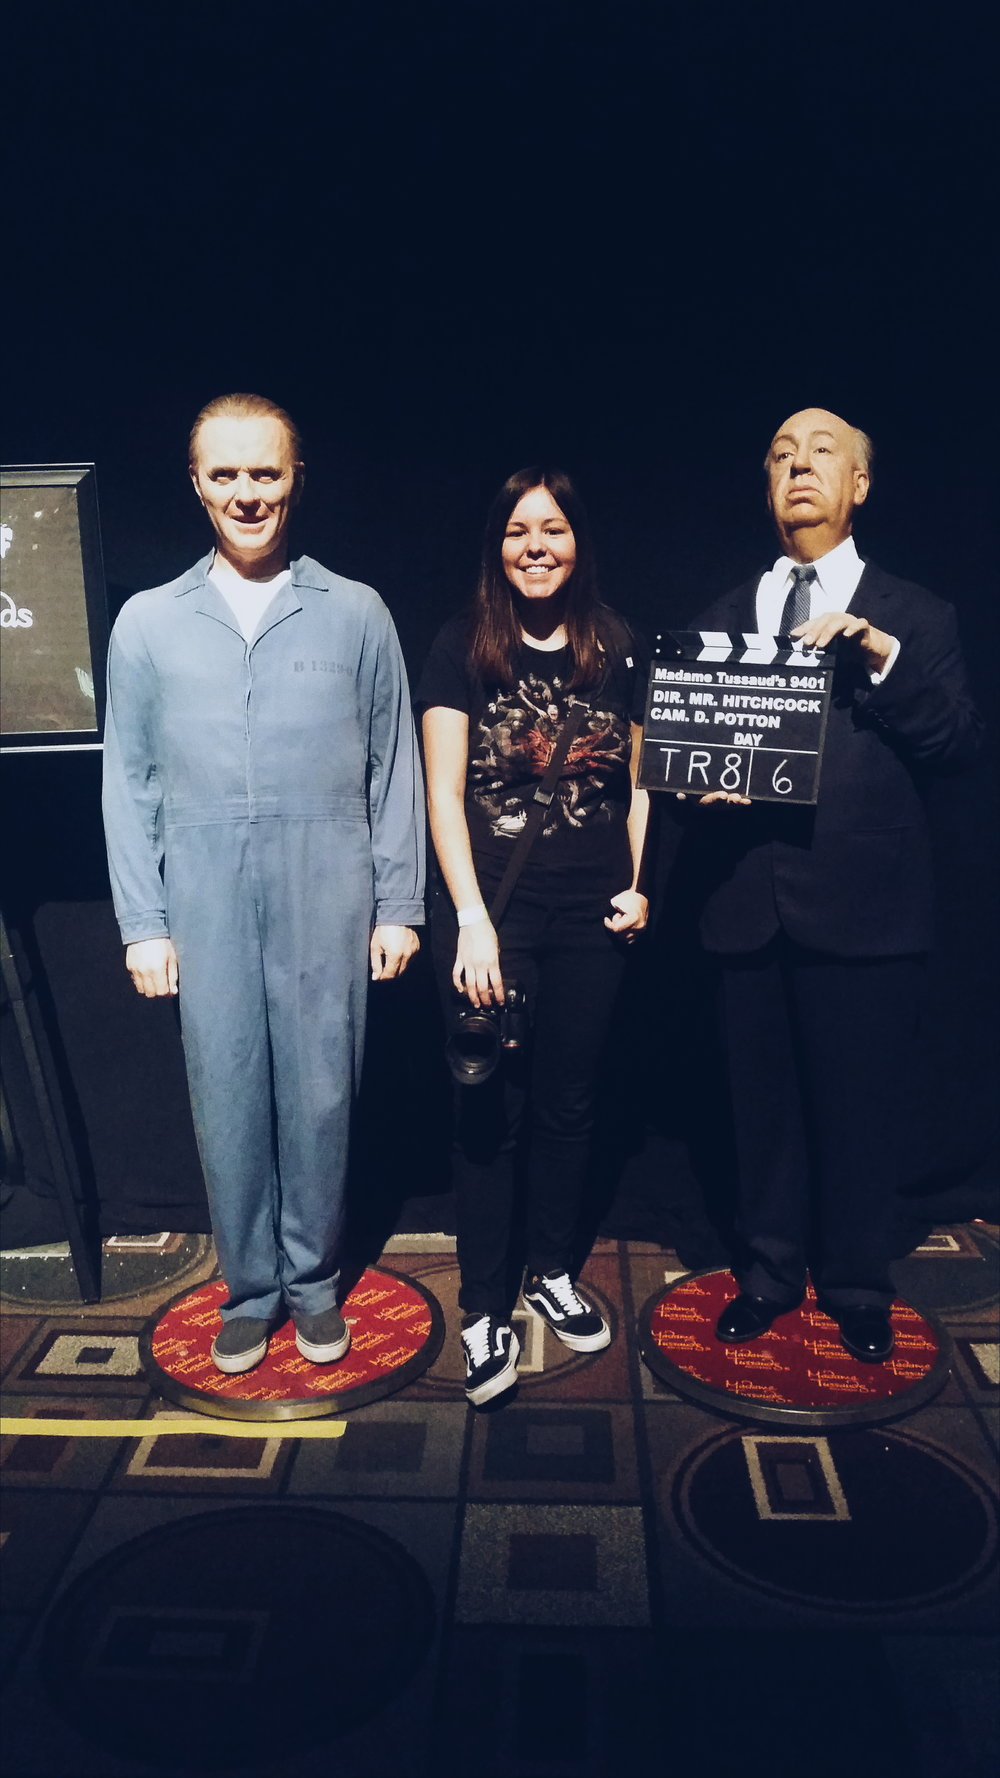 Me posing with  Hannibal and  Alfred Hitchcock